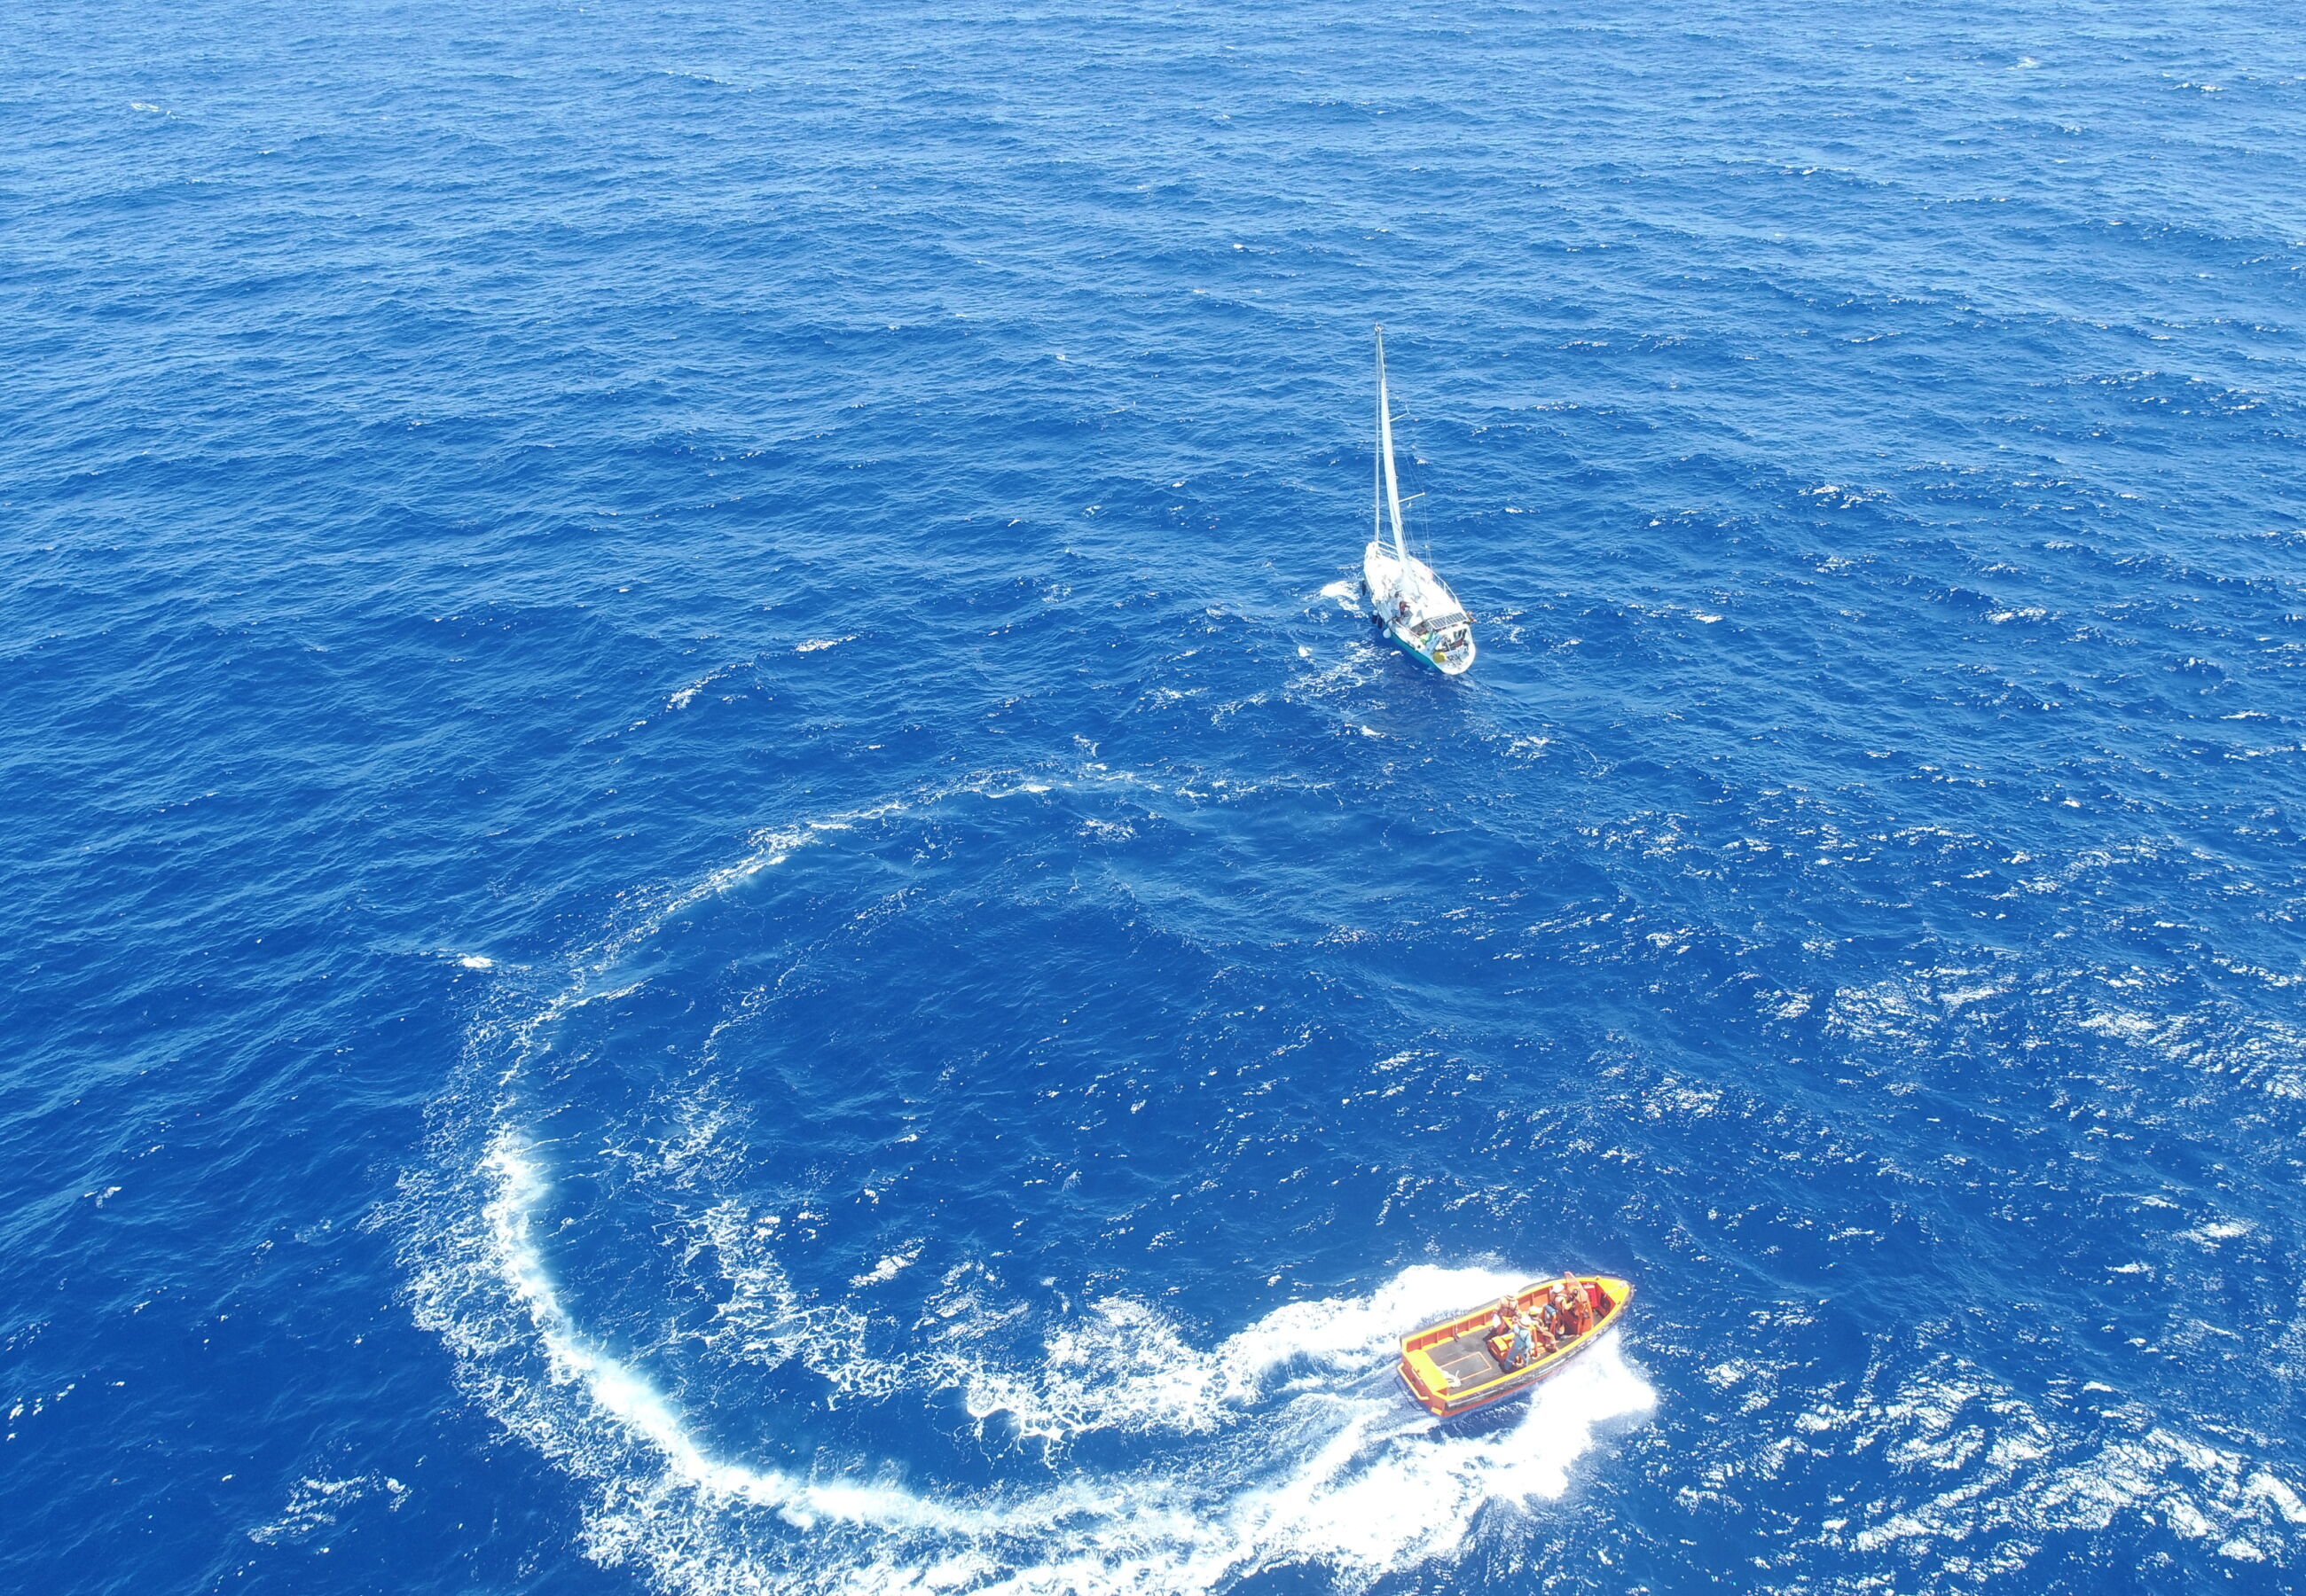 ALP Sweeper assists crew of yacht Jacotte 2